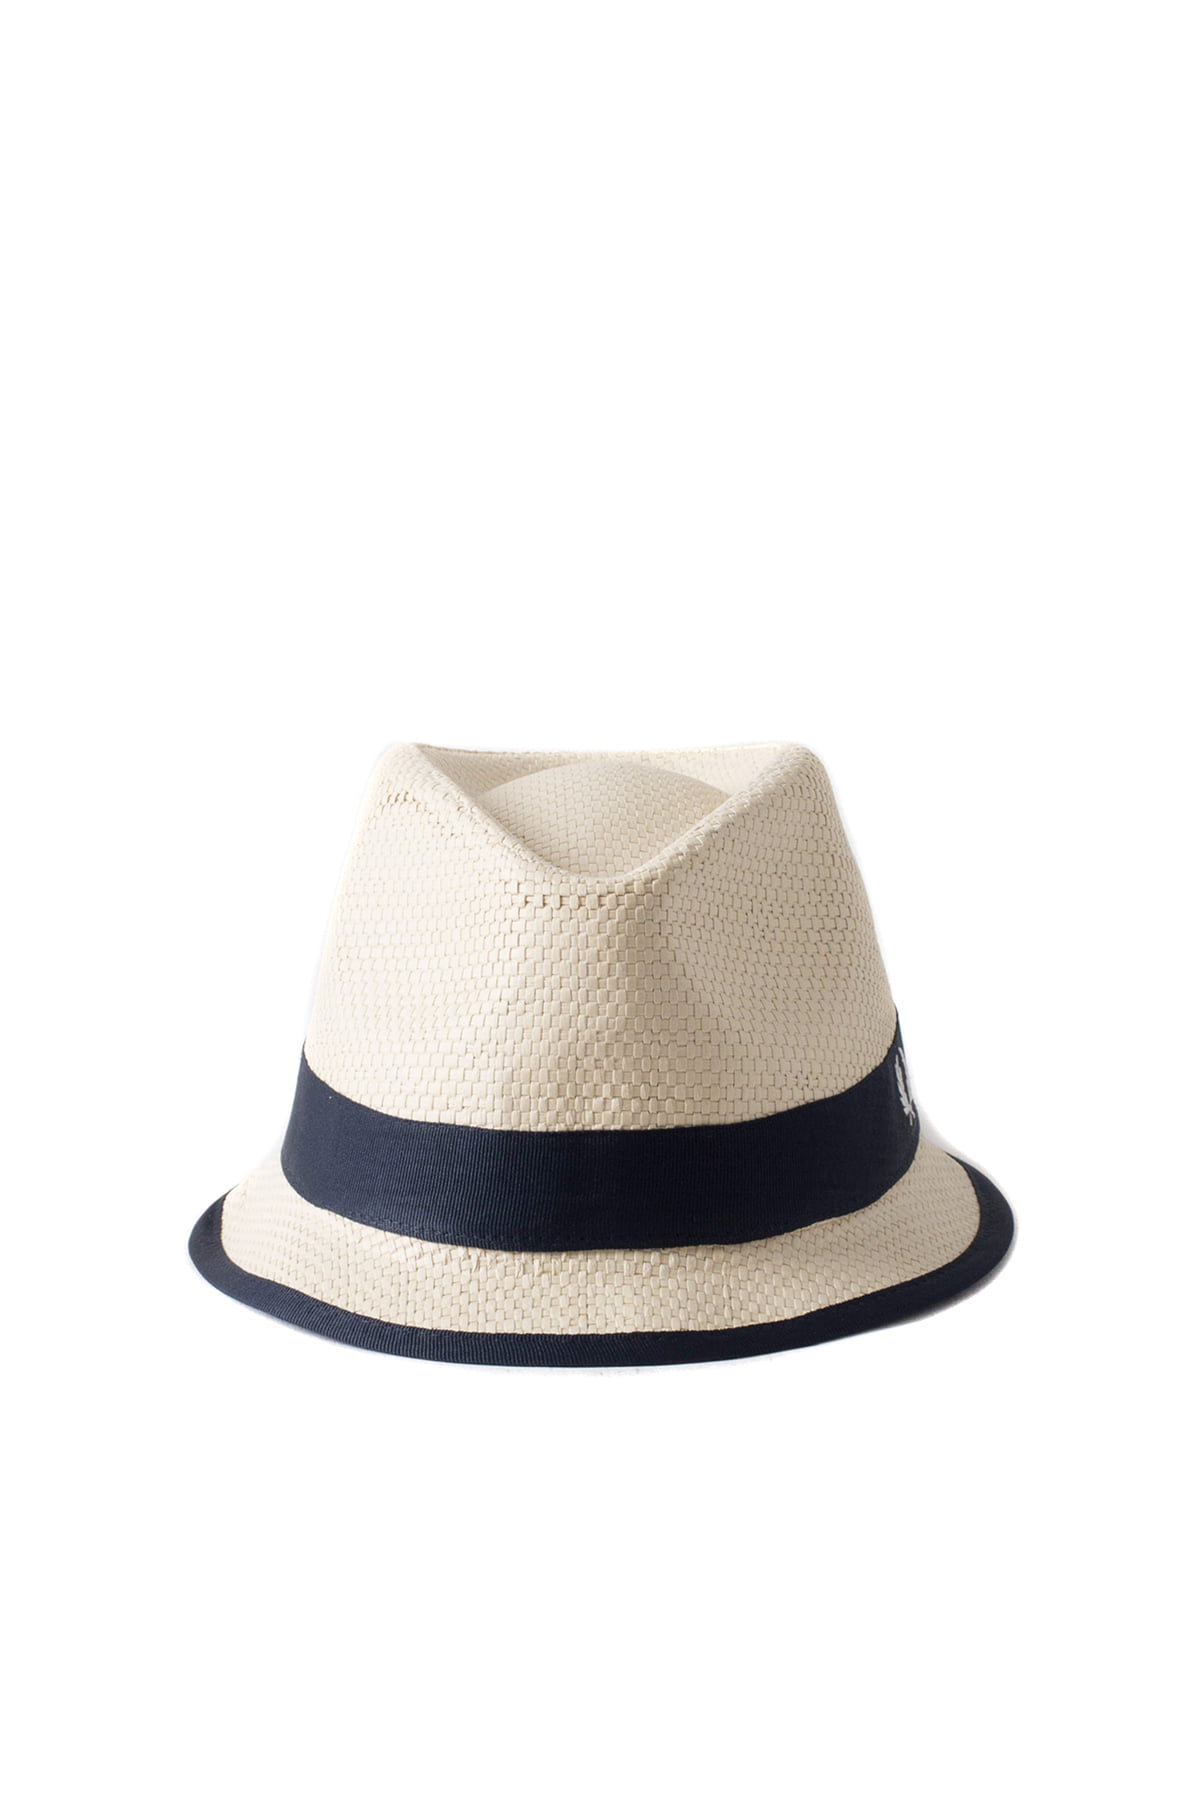 FRED PERRY : Straw Trilby (Natural)